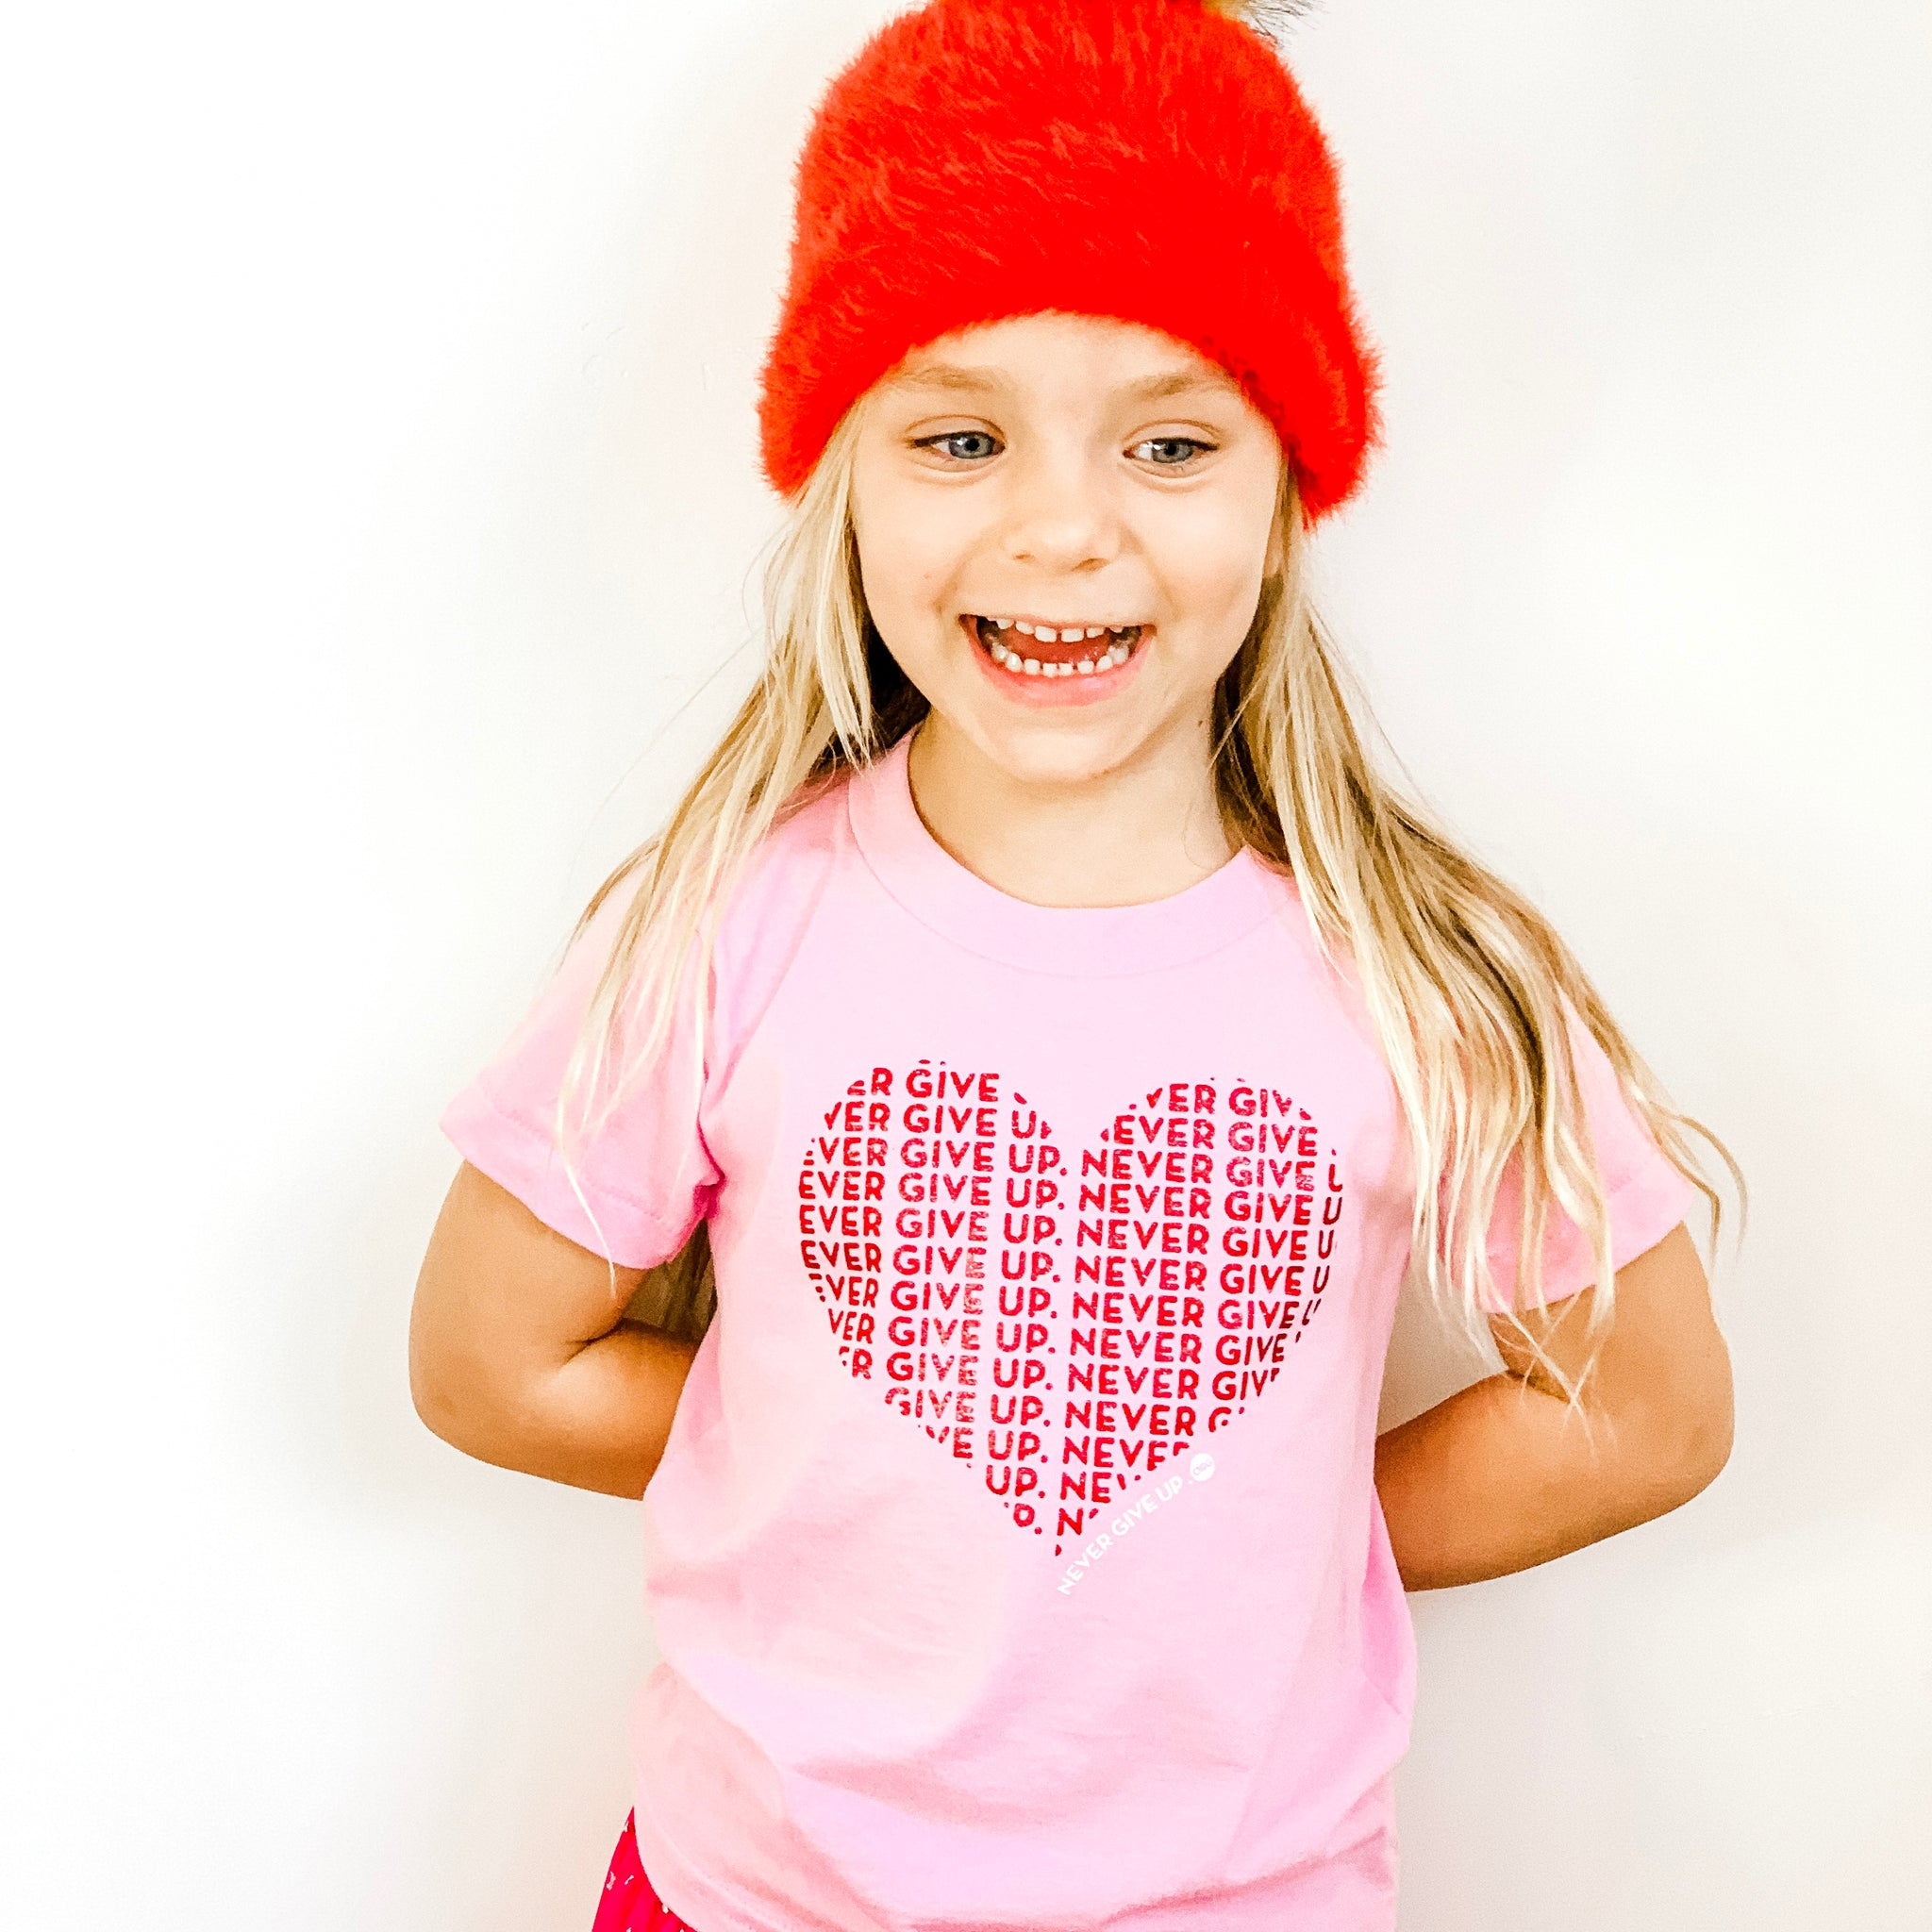 KIDS HEART NEVER GIVE UP. TEE